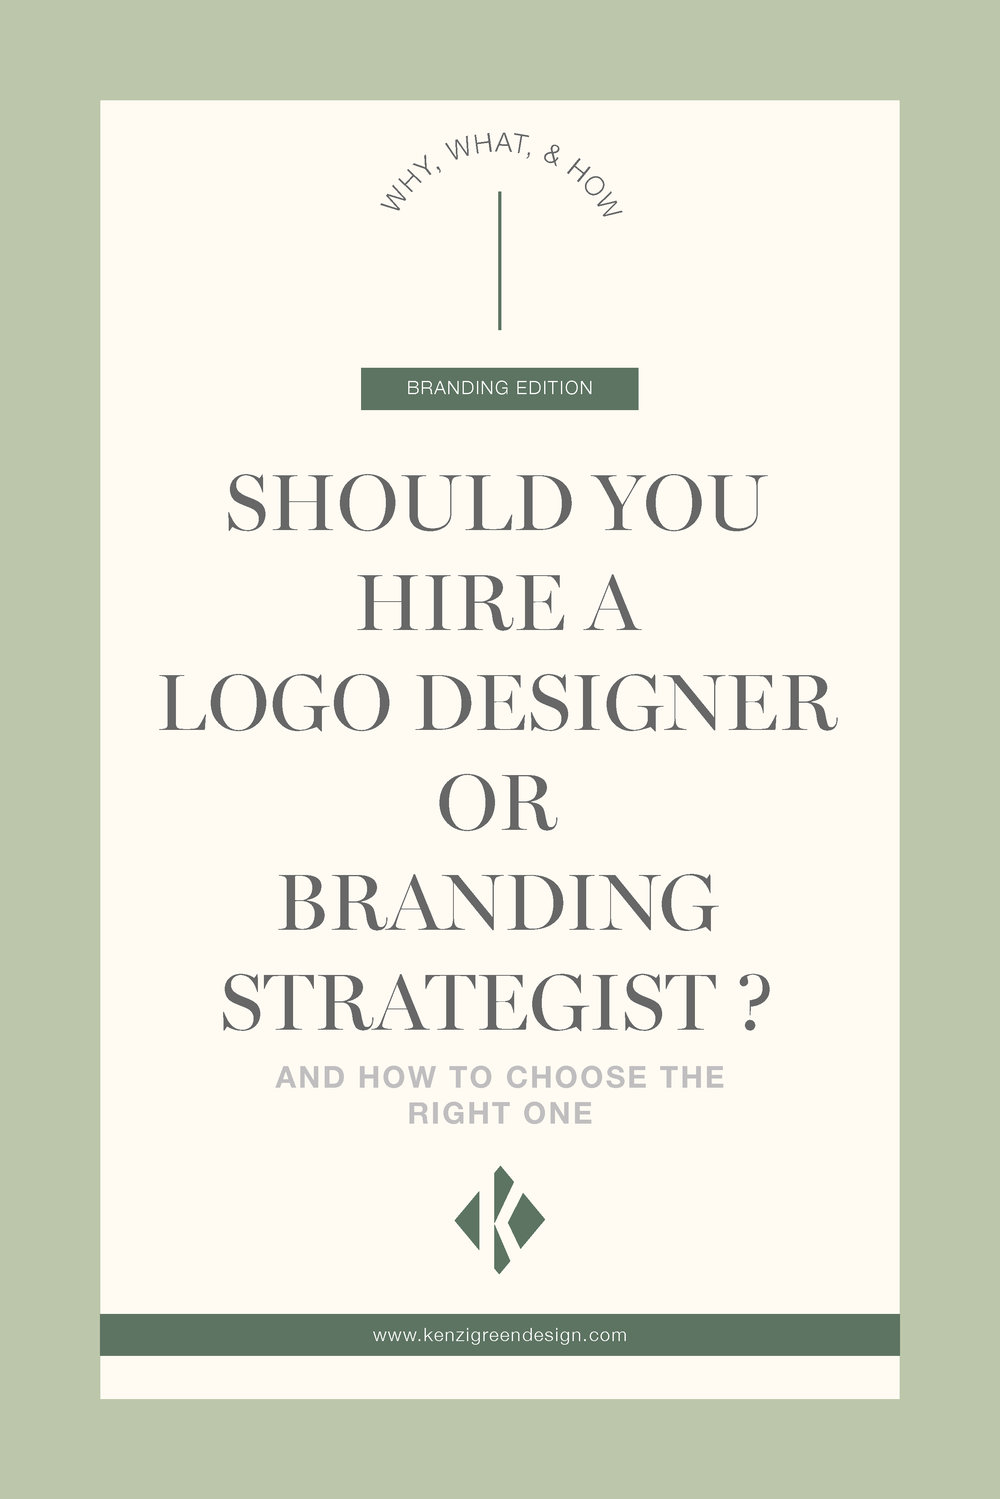 Should You Hire a Logo Designer or Branding Strategist?  And How to Choose the Right One #branding #logodesign #brandidentity #businesstips